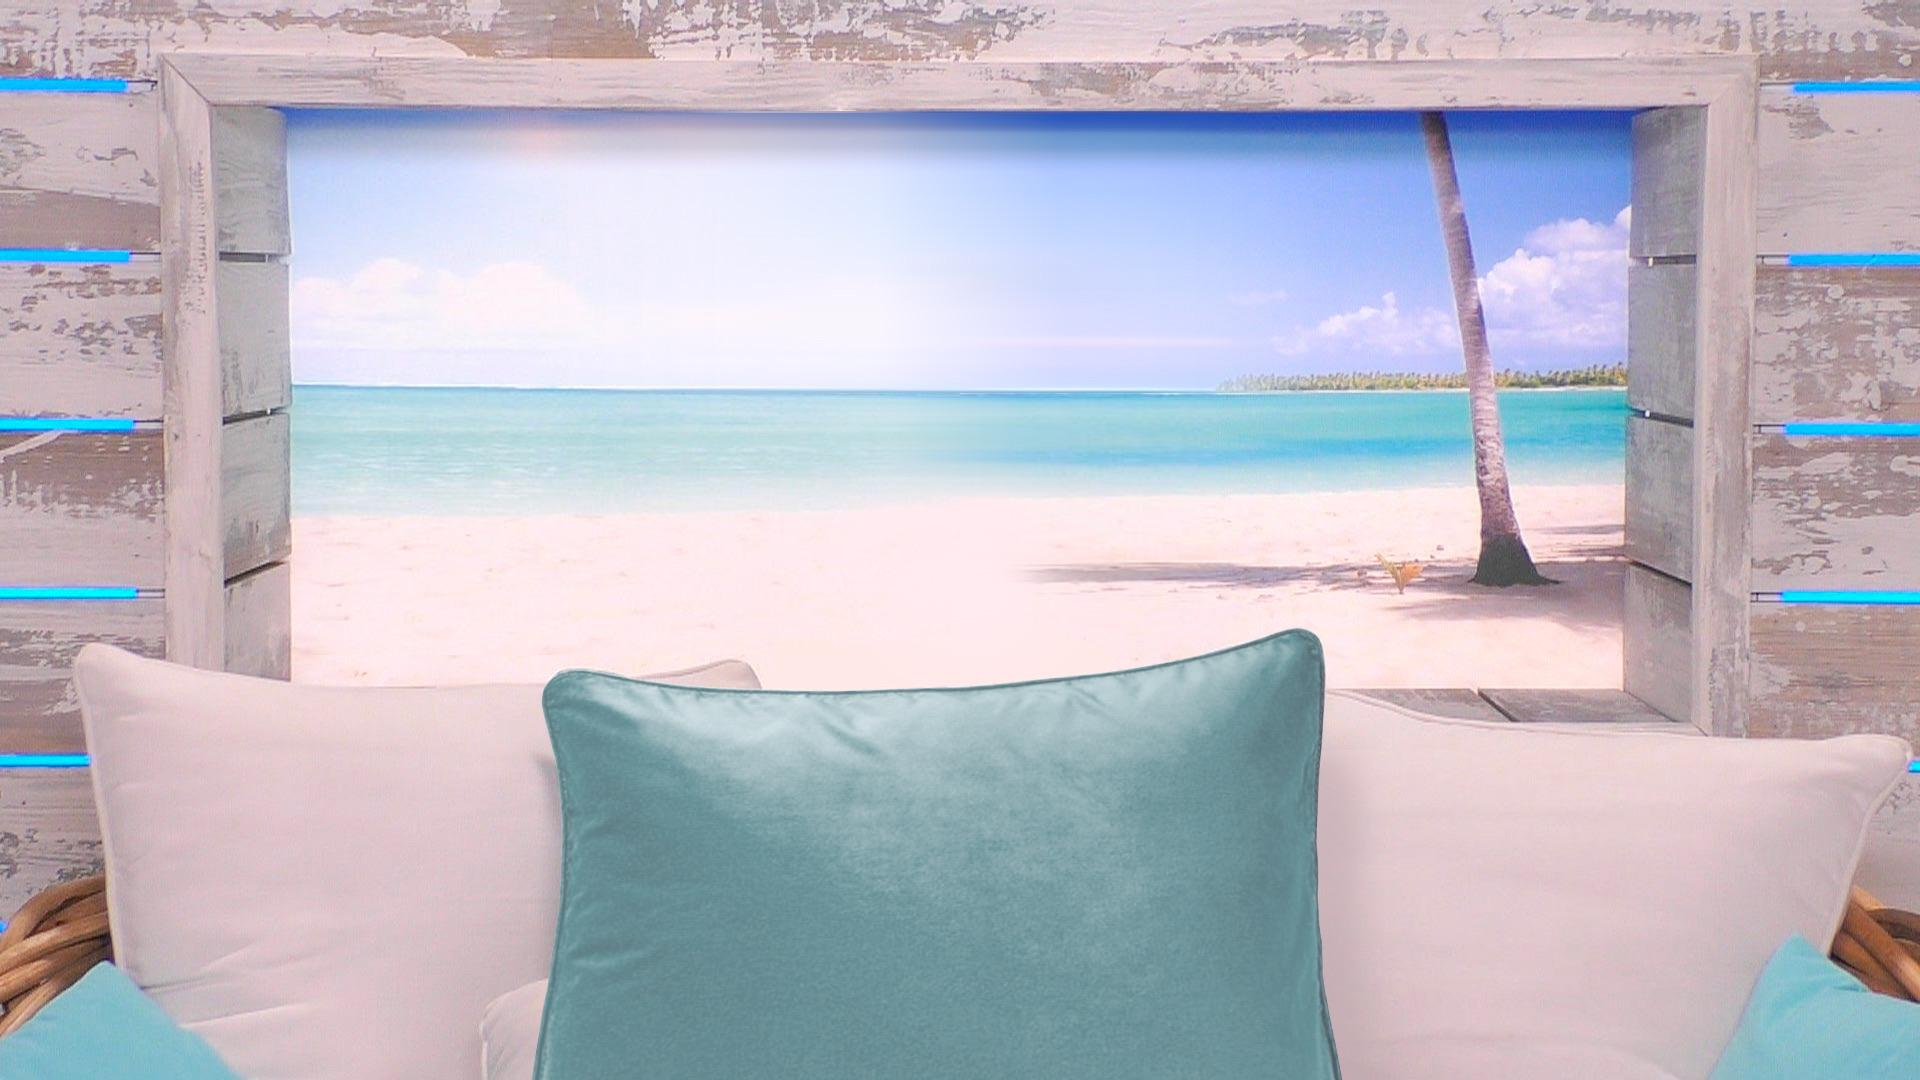 Islanders I Made A Beach Hut Zoom Background For Your Conference Calls Loveislandtv